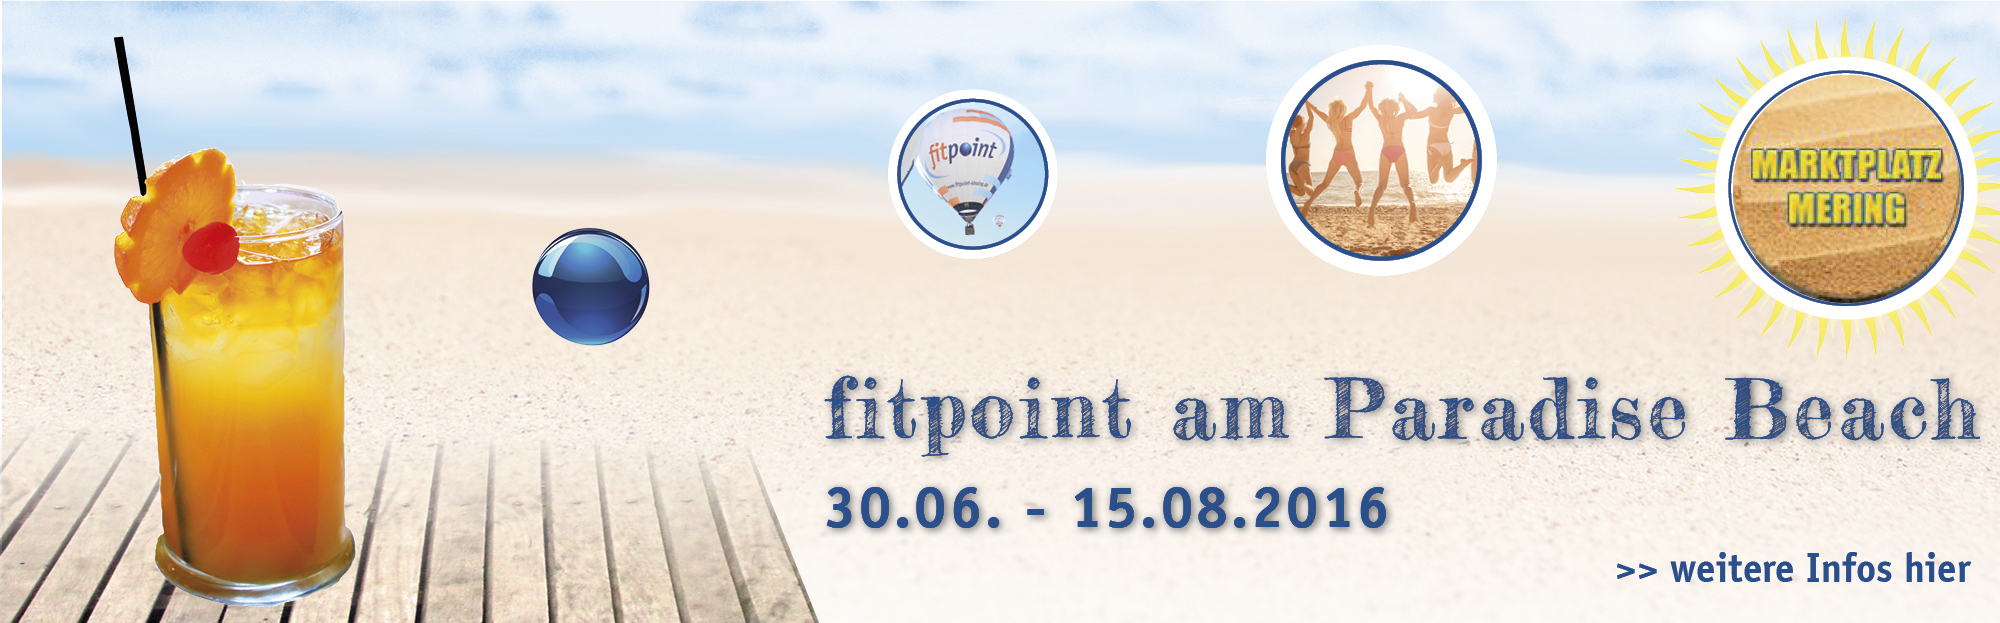 fitpoint am Paradise-Beach 2016 Background